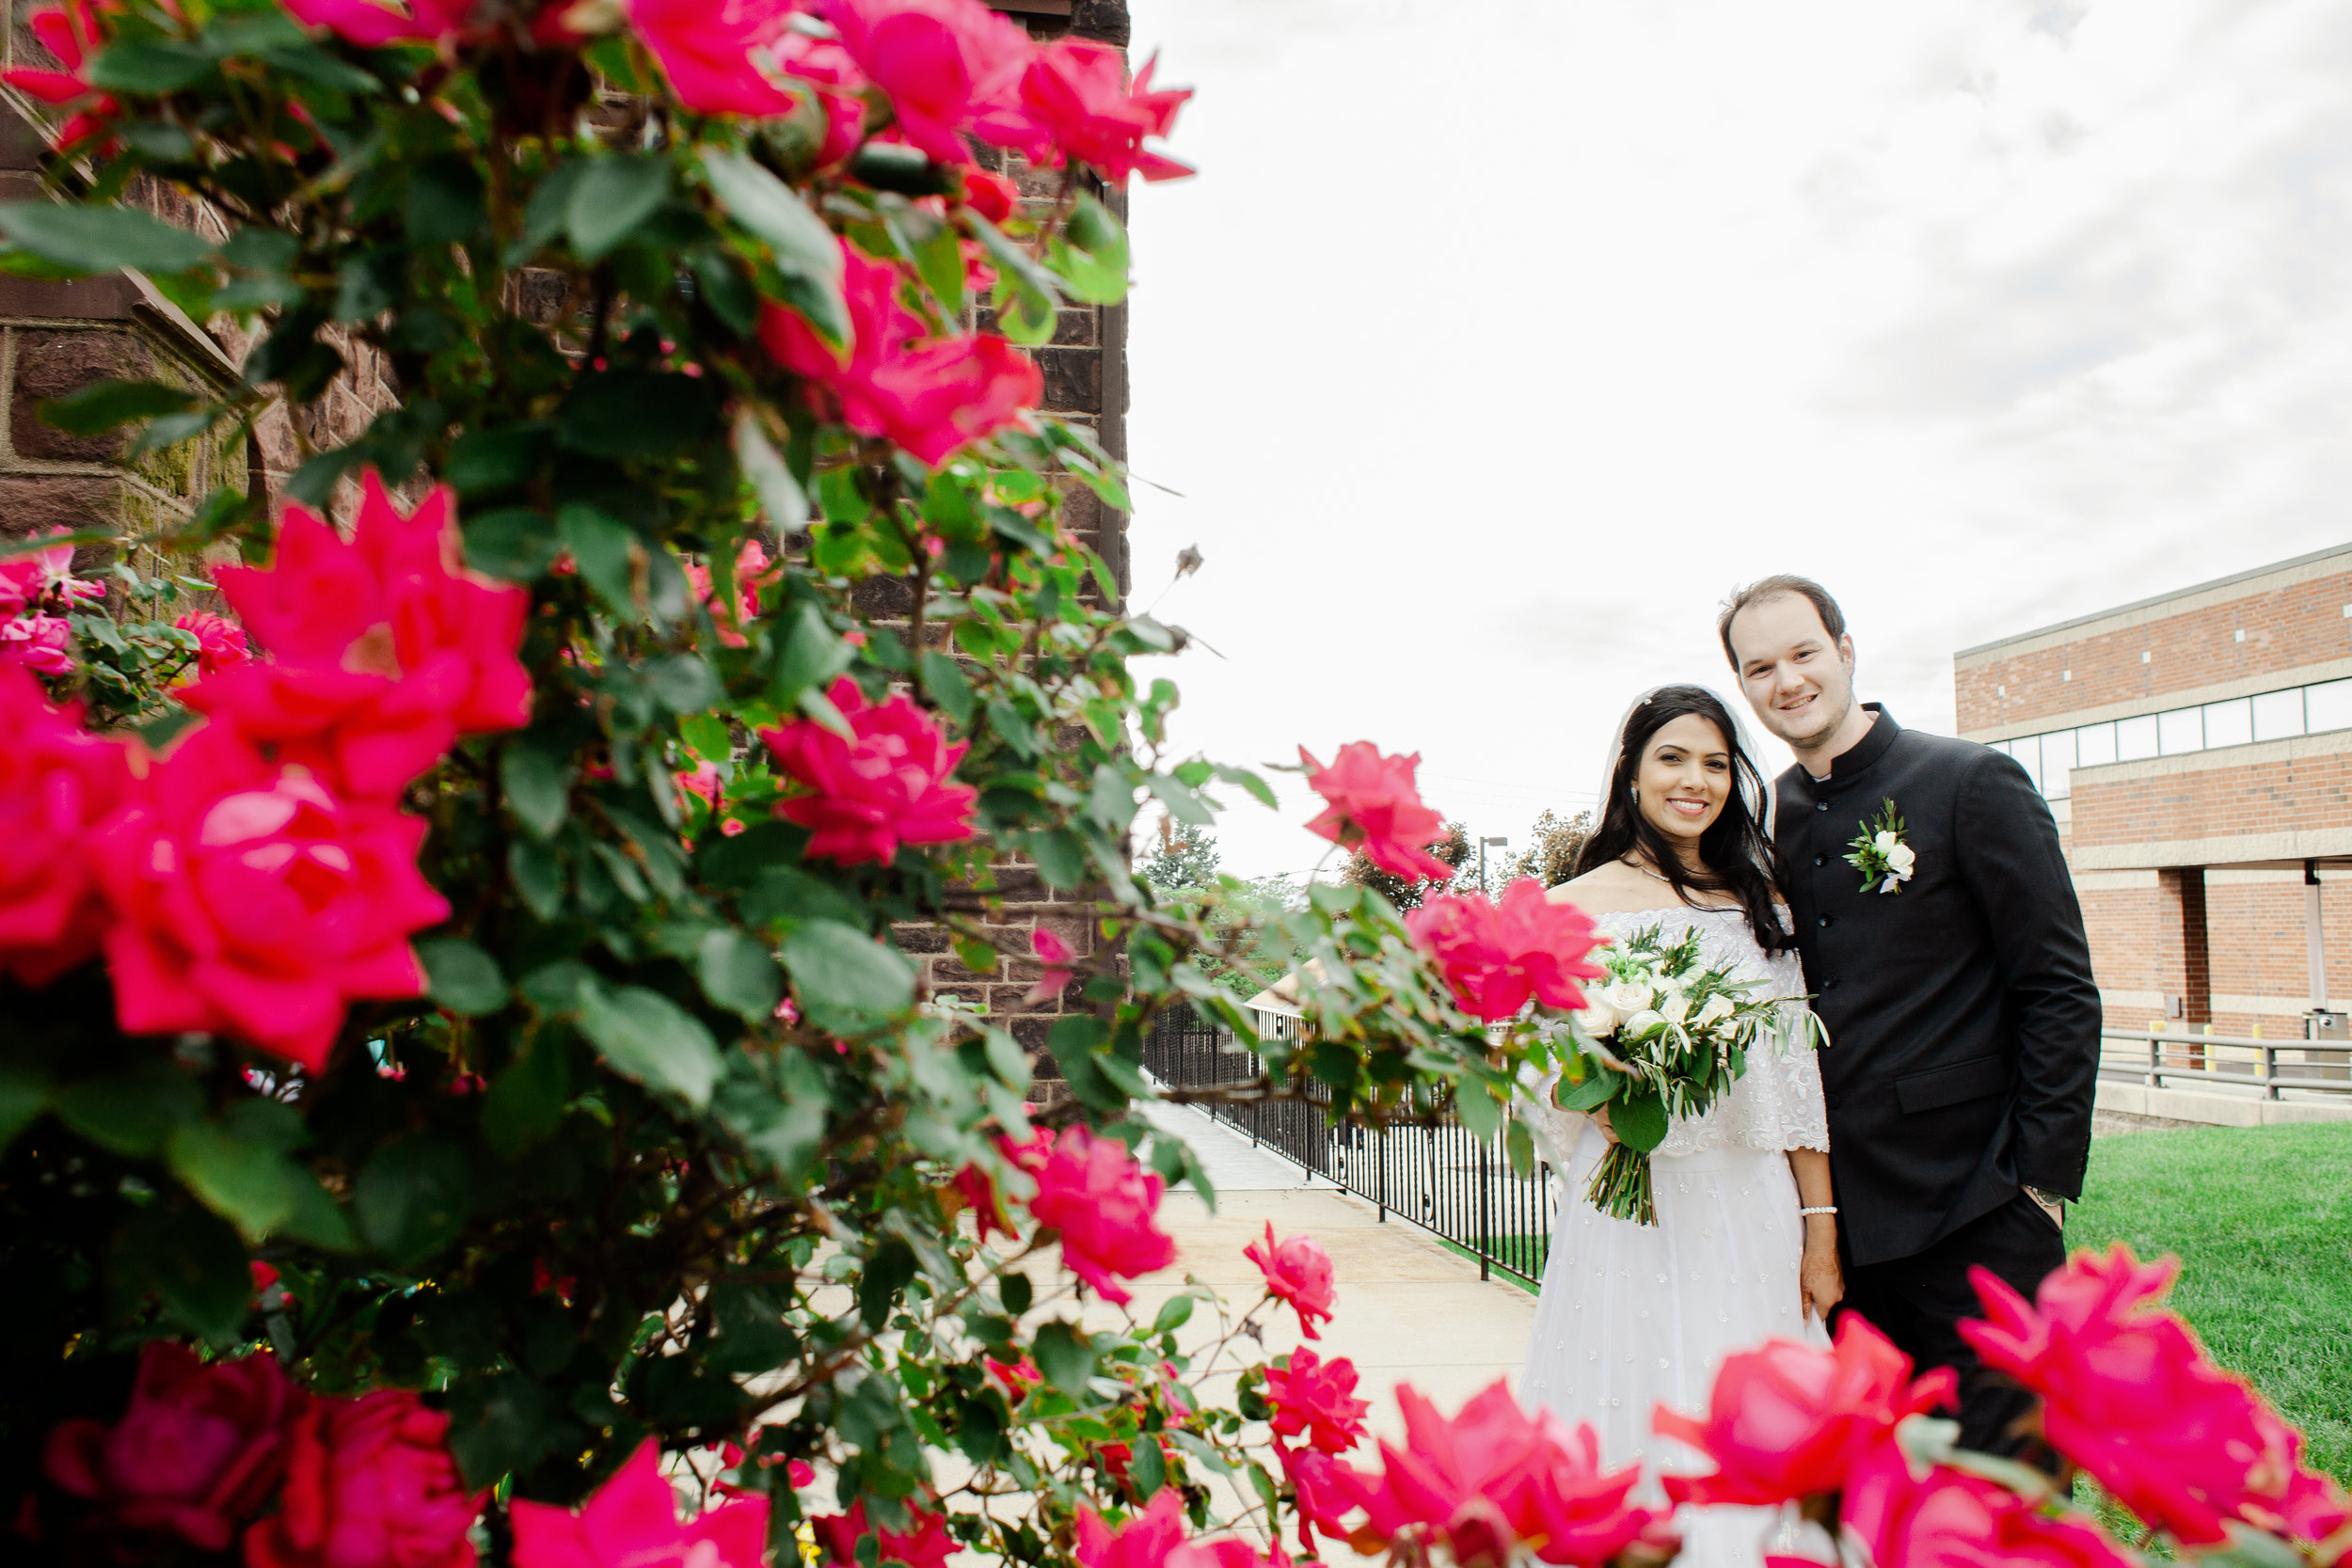 Prerna and Wyatt-973a.jpg